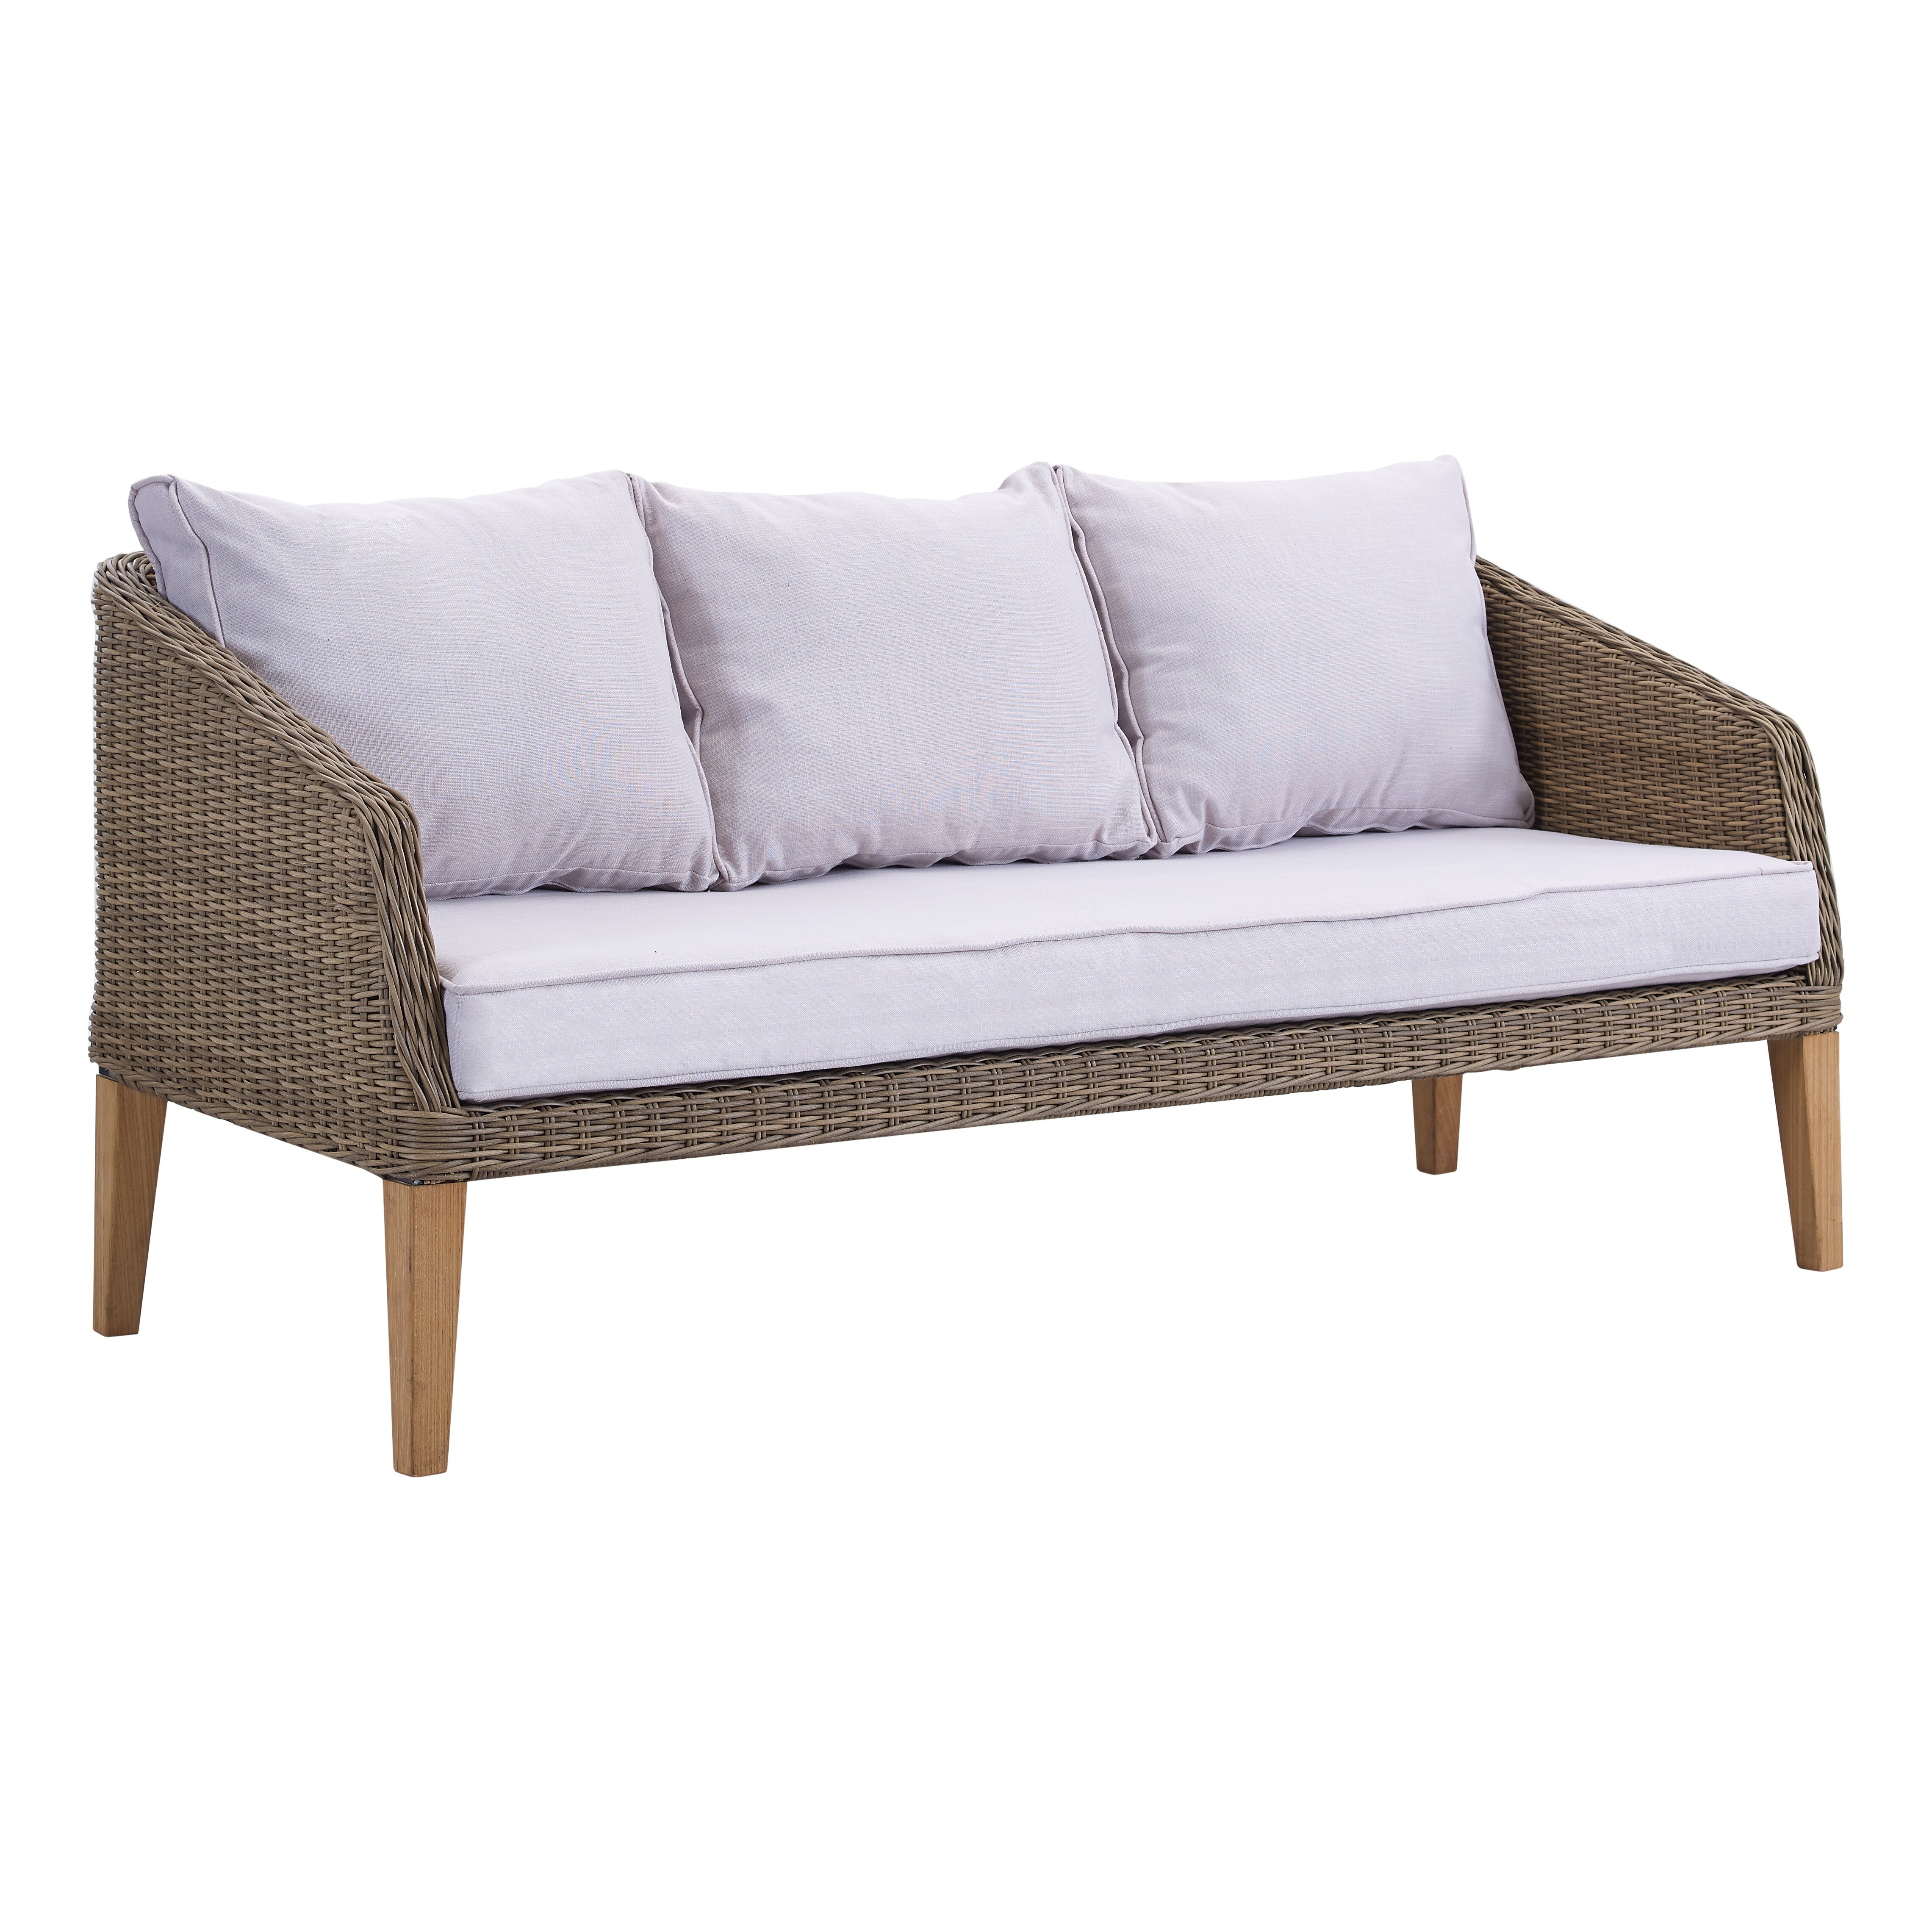 Awesome Bed Bath and Beyond Patio Furniture